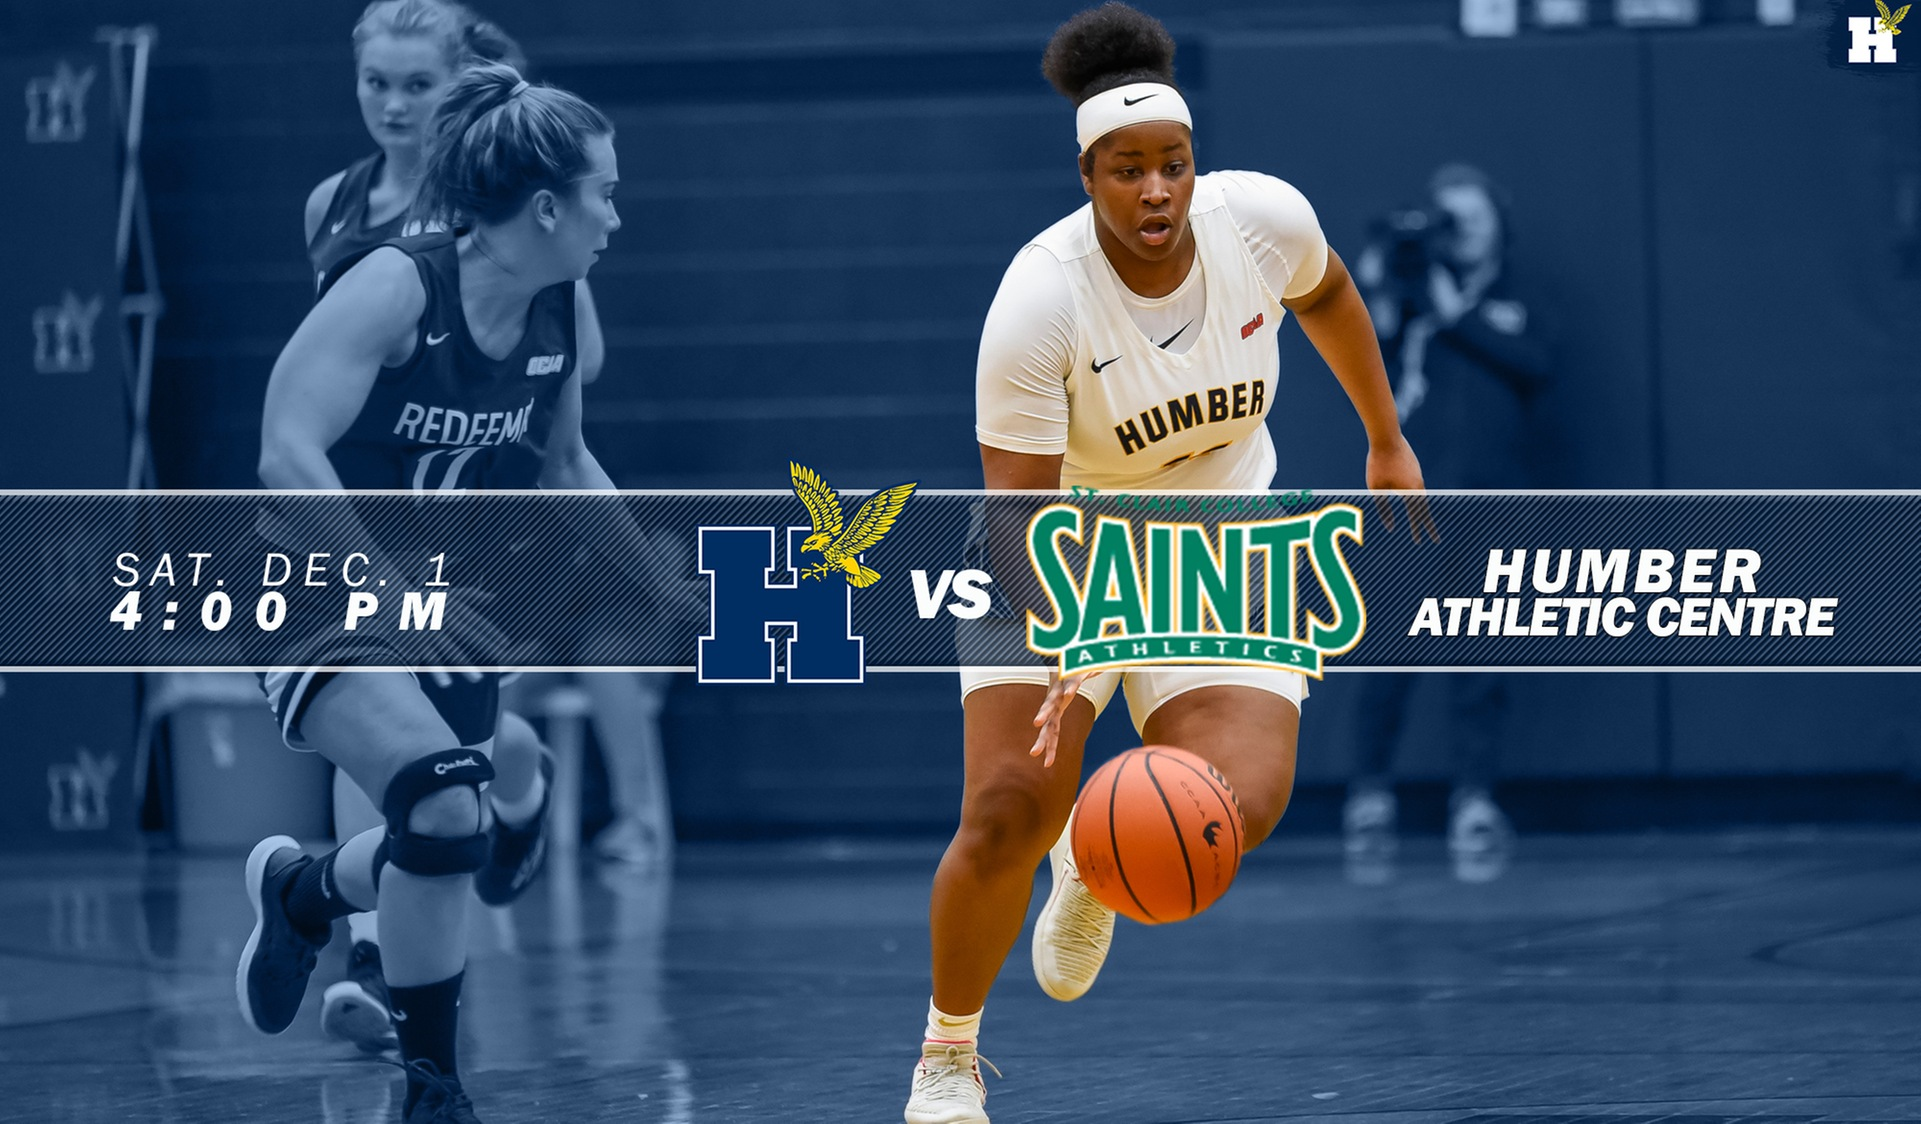 No. 11 WOMEN'S BASKETBALL CONCLUDES FIRST-HALF SATURDAY AGAINST ST. CLAIR